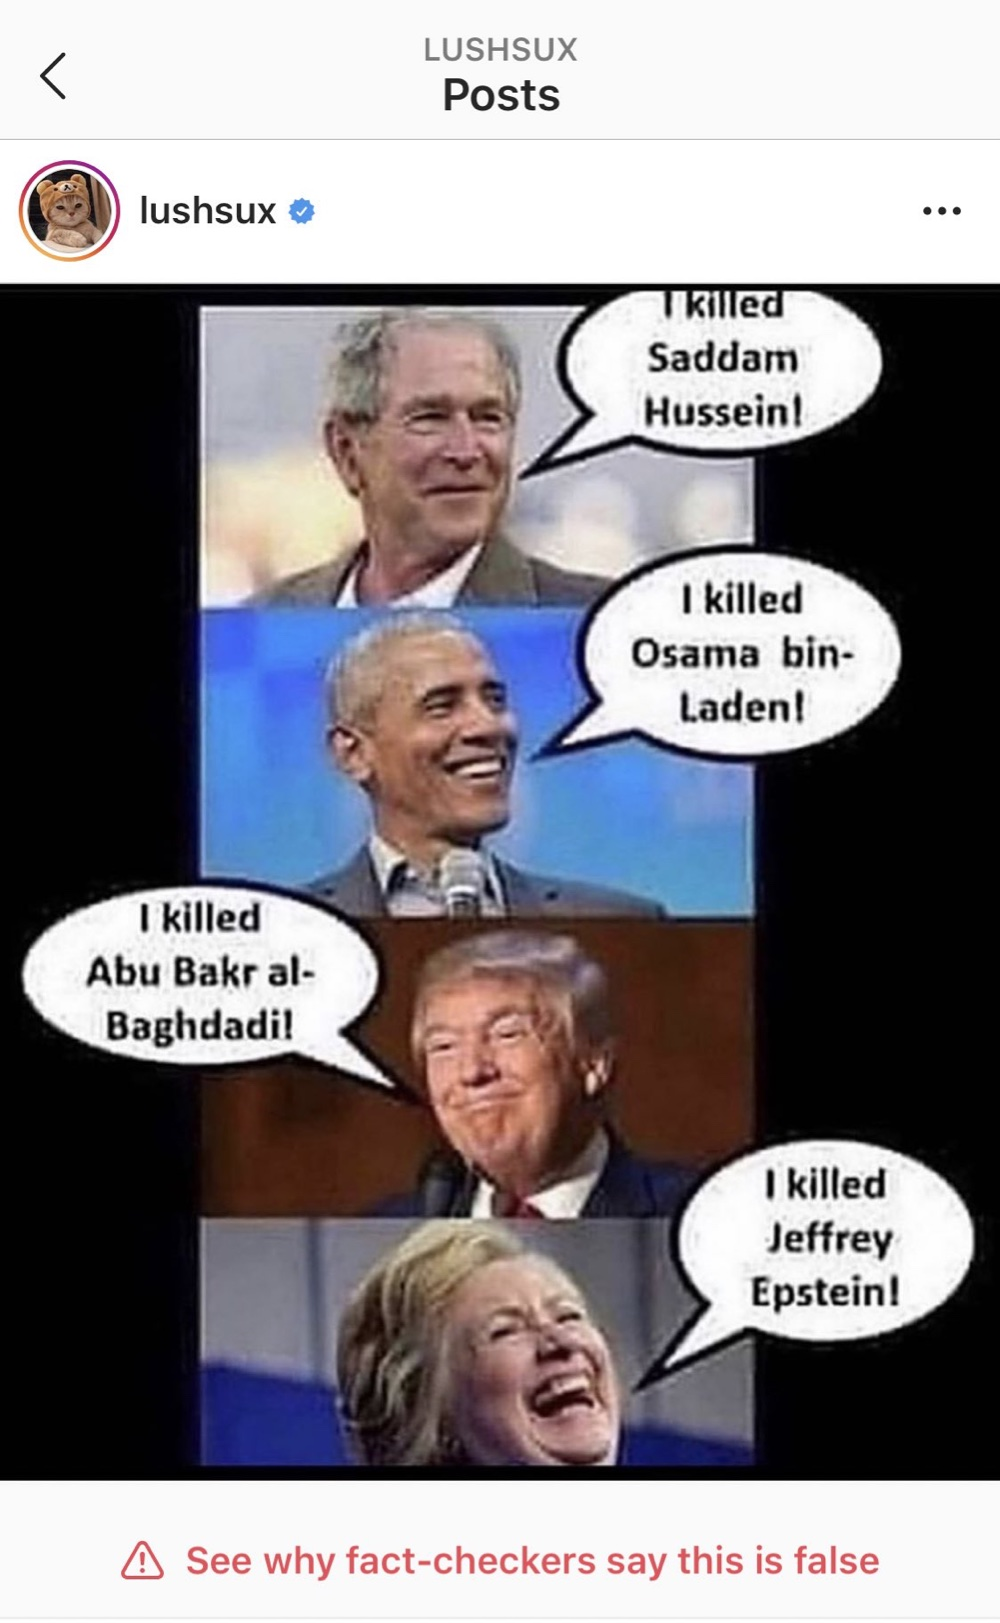 A Jeffrey Epstein meme that's been fact-checked, labeled false, and hidden by Instagram (Instagram - @lushsux)